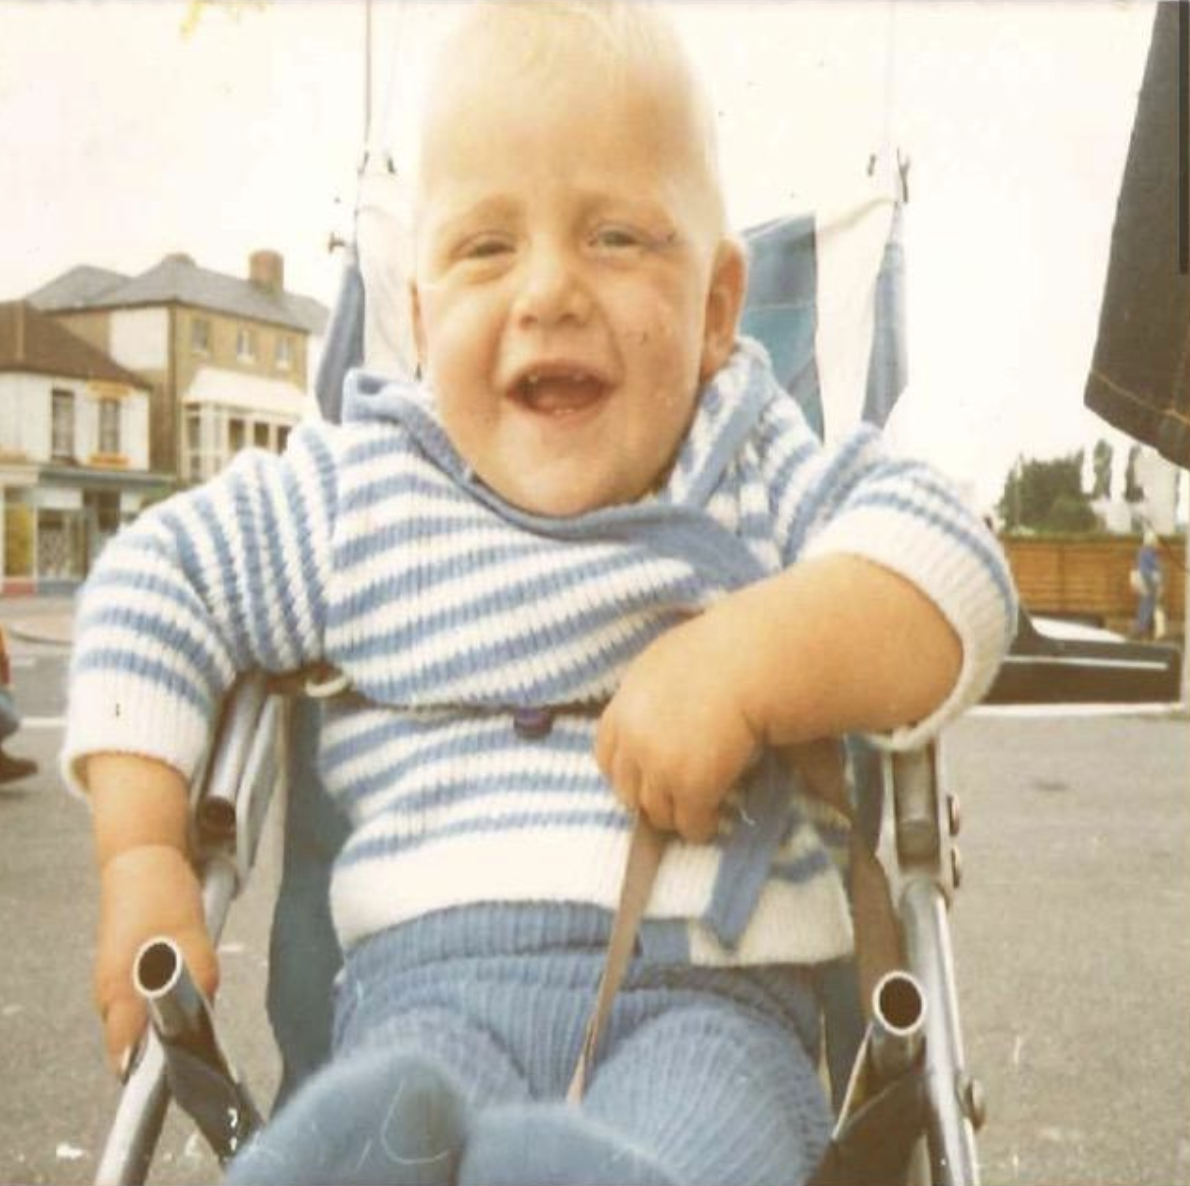 freddie flintoff baby photo